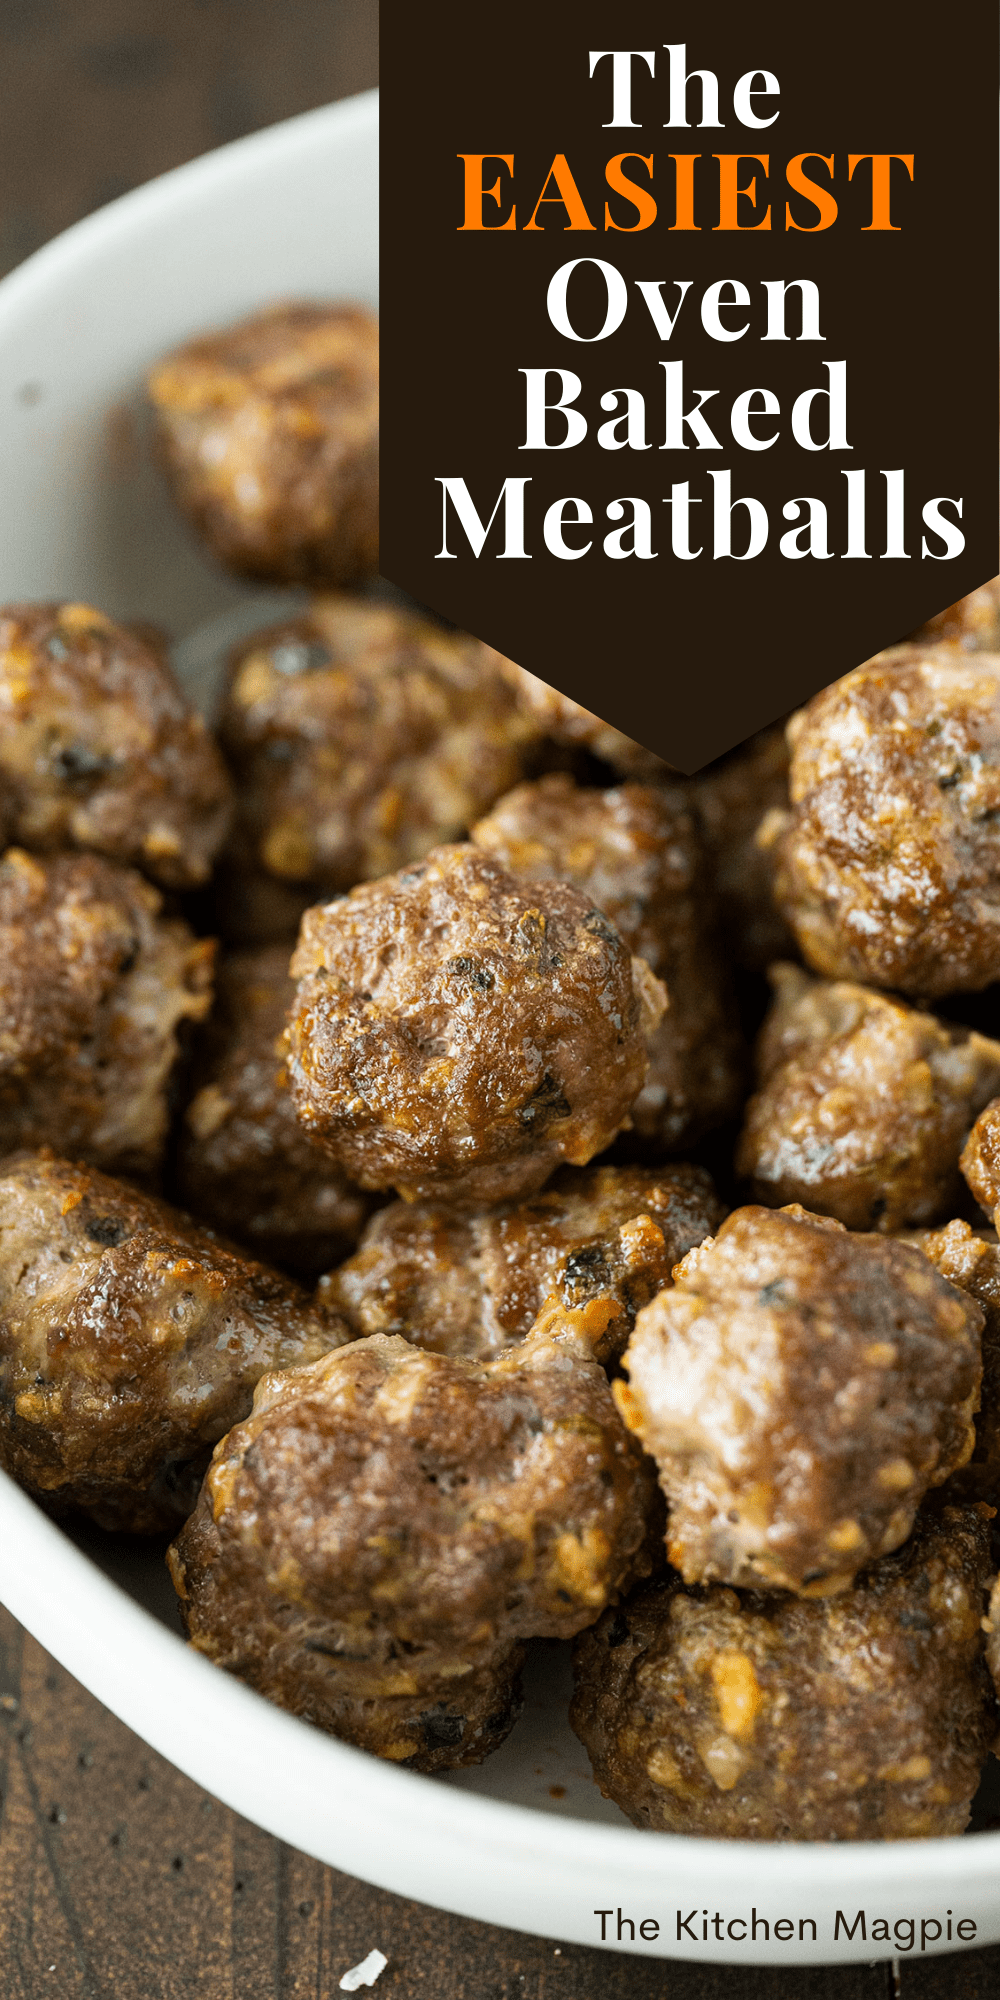 These oven baked meatballs are so easy to make and are the perfect make-ahead freezer meal! Make a double (or triple!) batch and freeze them for later use!